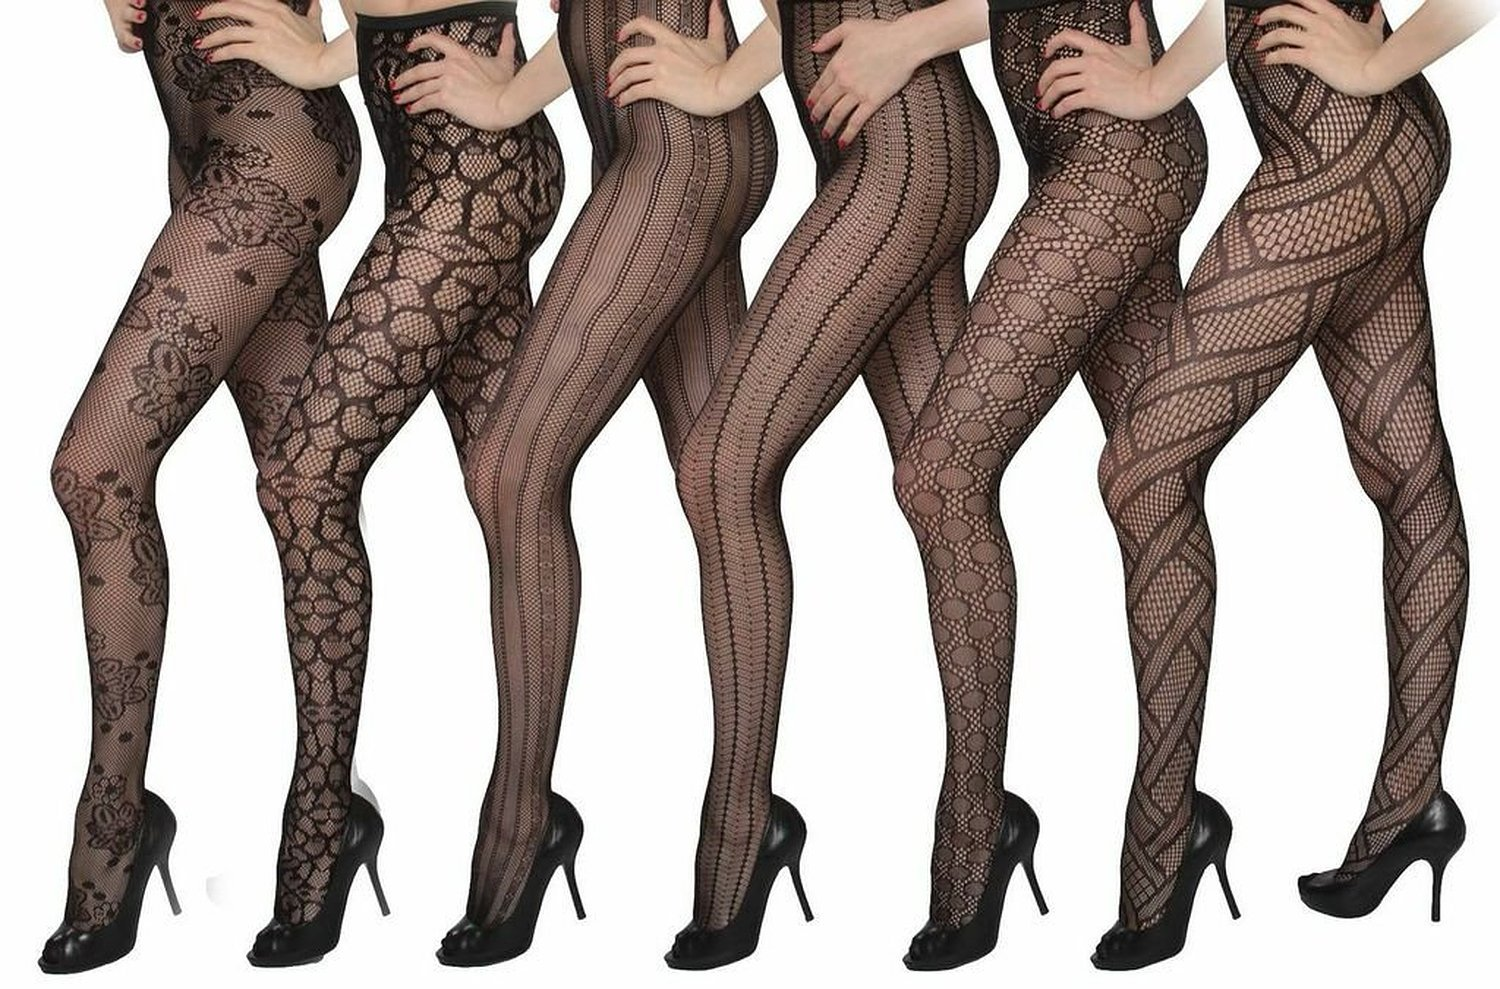 Isadora Paccini Women's 6-Pack Fishnet Lace Pantyhose Tights, Queen, Black 809Q